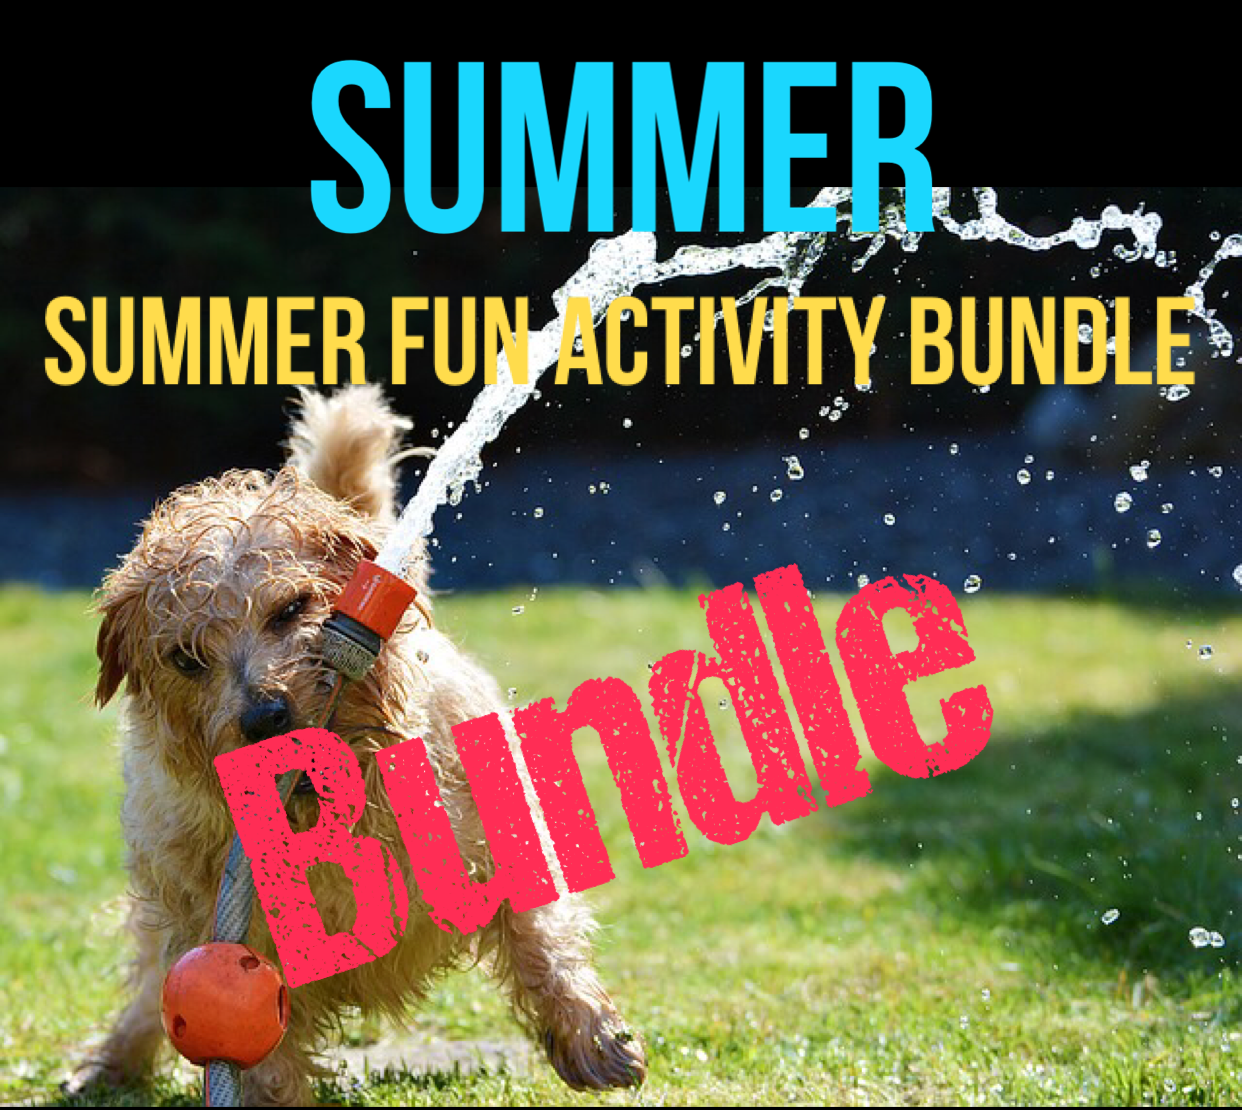 Summer Activity Bundle Pack for EYFS/KS1